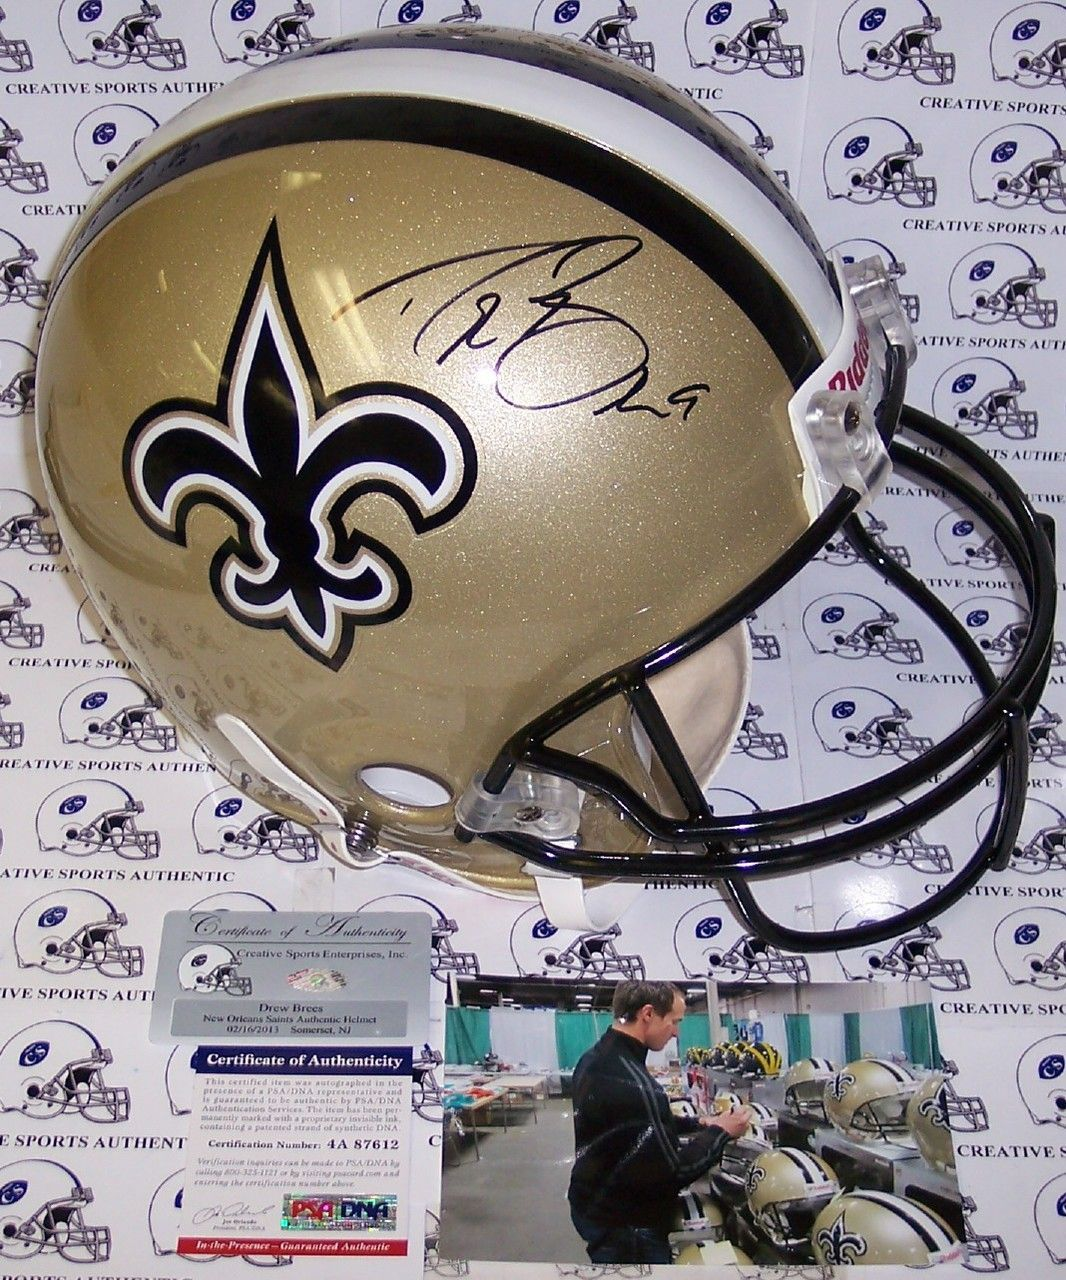 55c4549ca Drew Brees Autographed Hand Signed New Orleans Saints Authentic Helmet - PSA /DNA